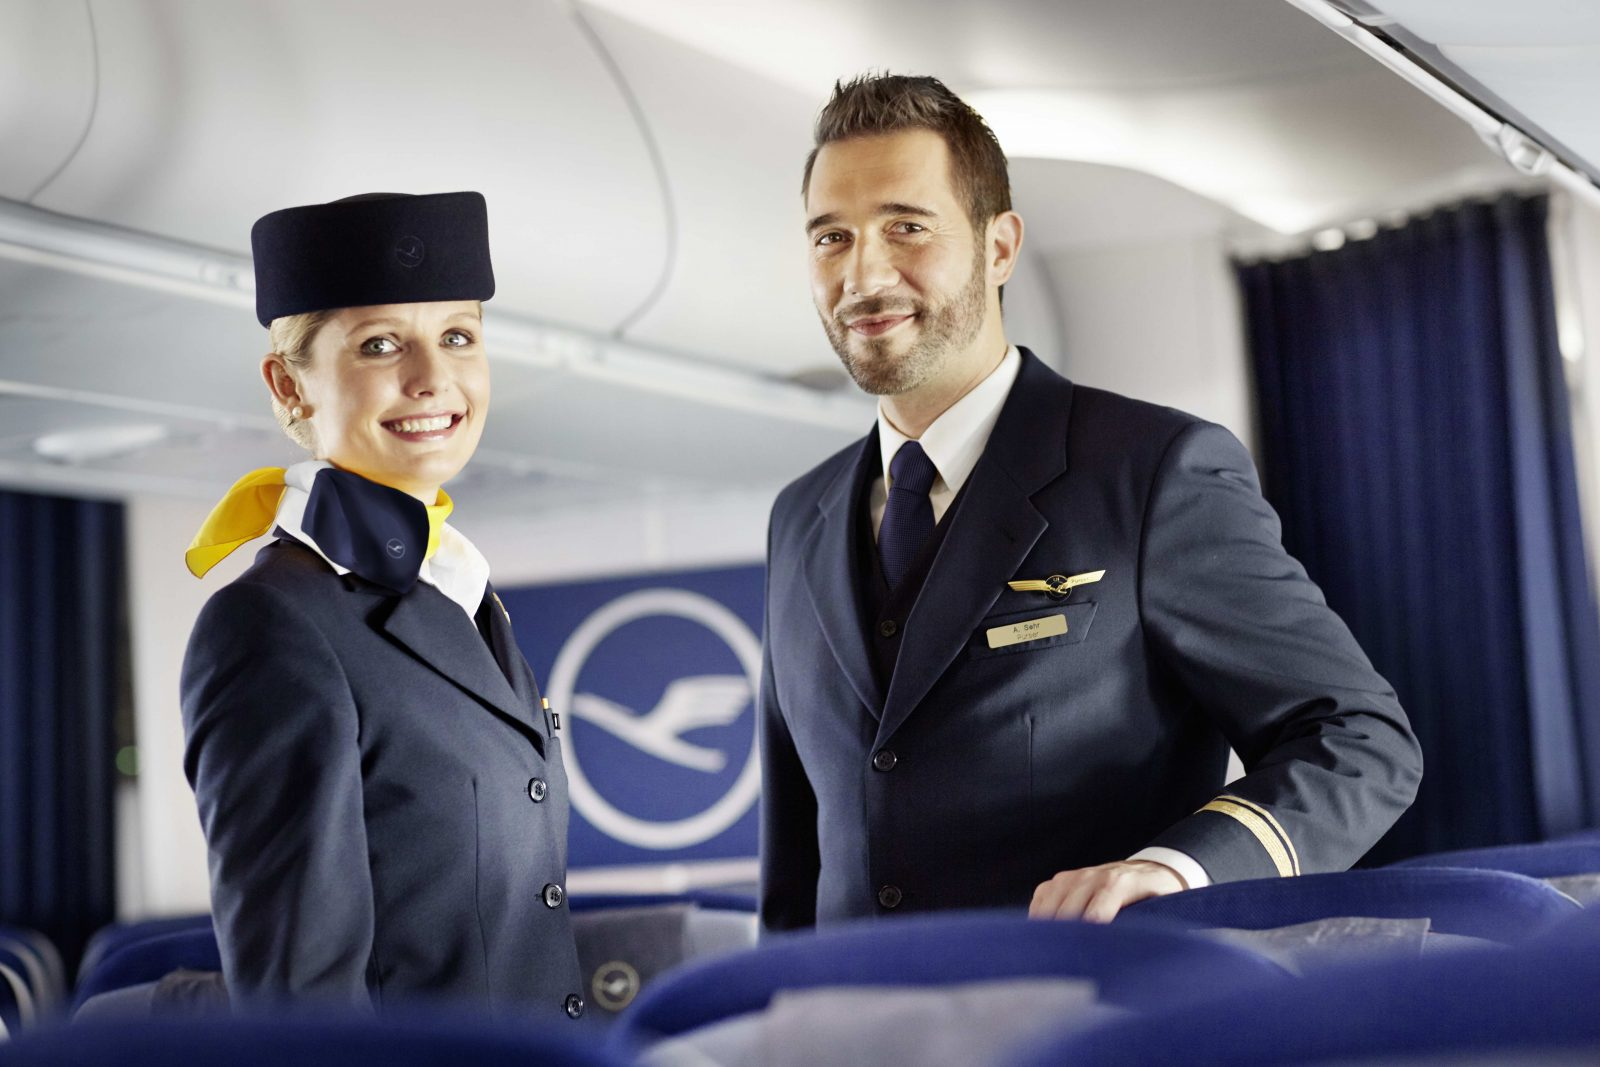 Will You Be Attending Lufthansa's Latest Cabin Crew Open Day in Munich on 1st September?